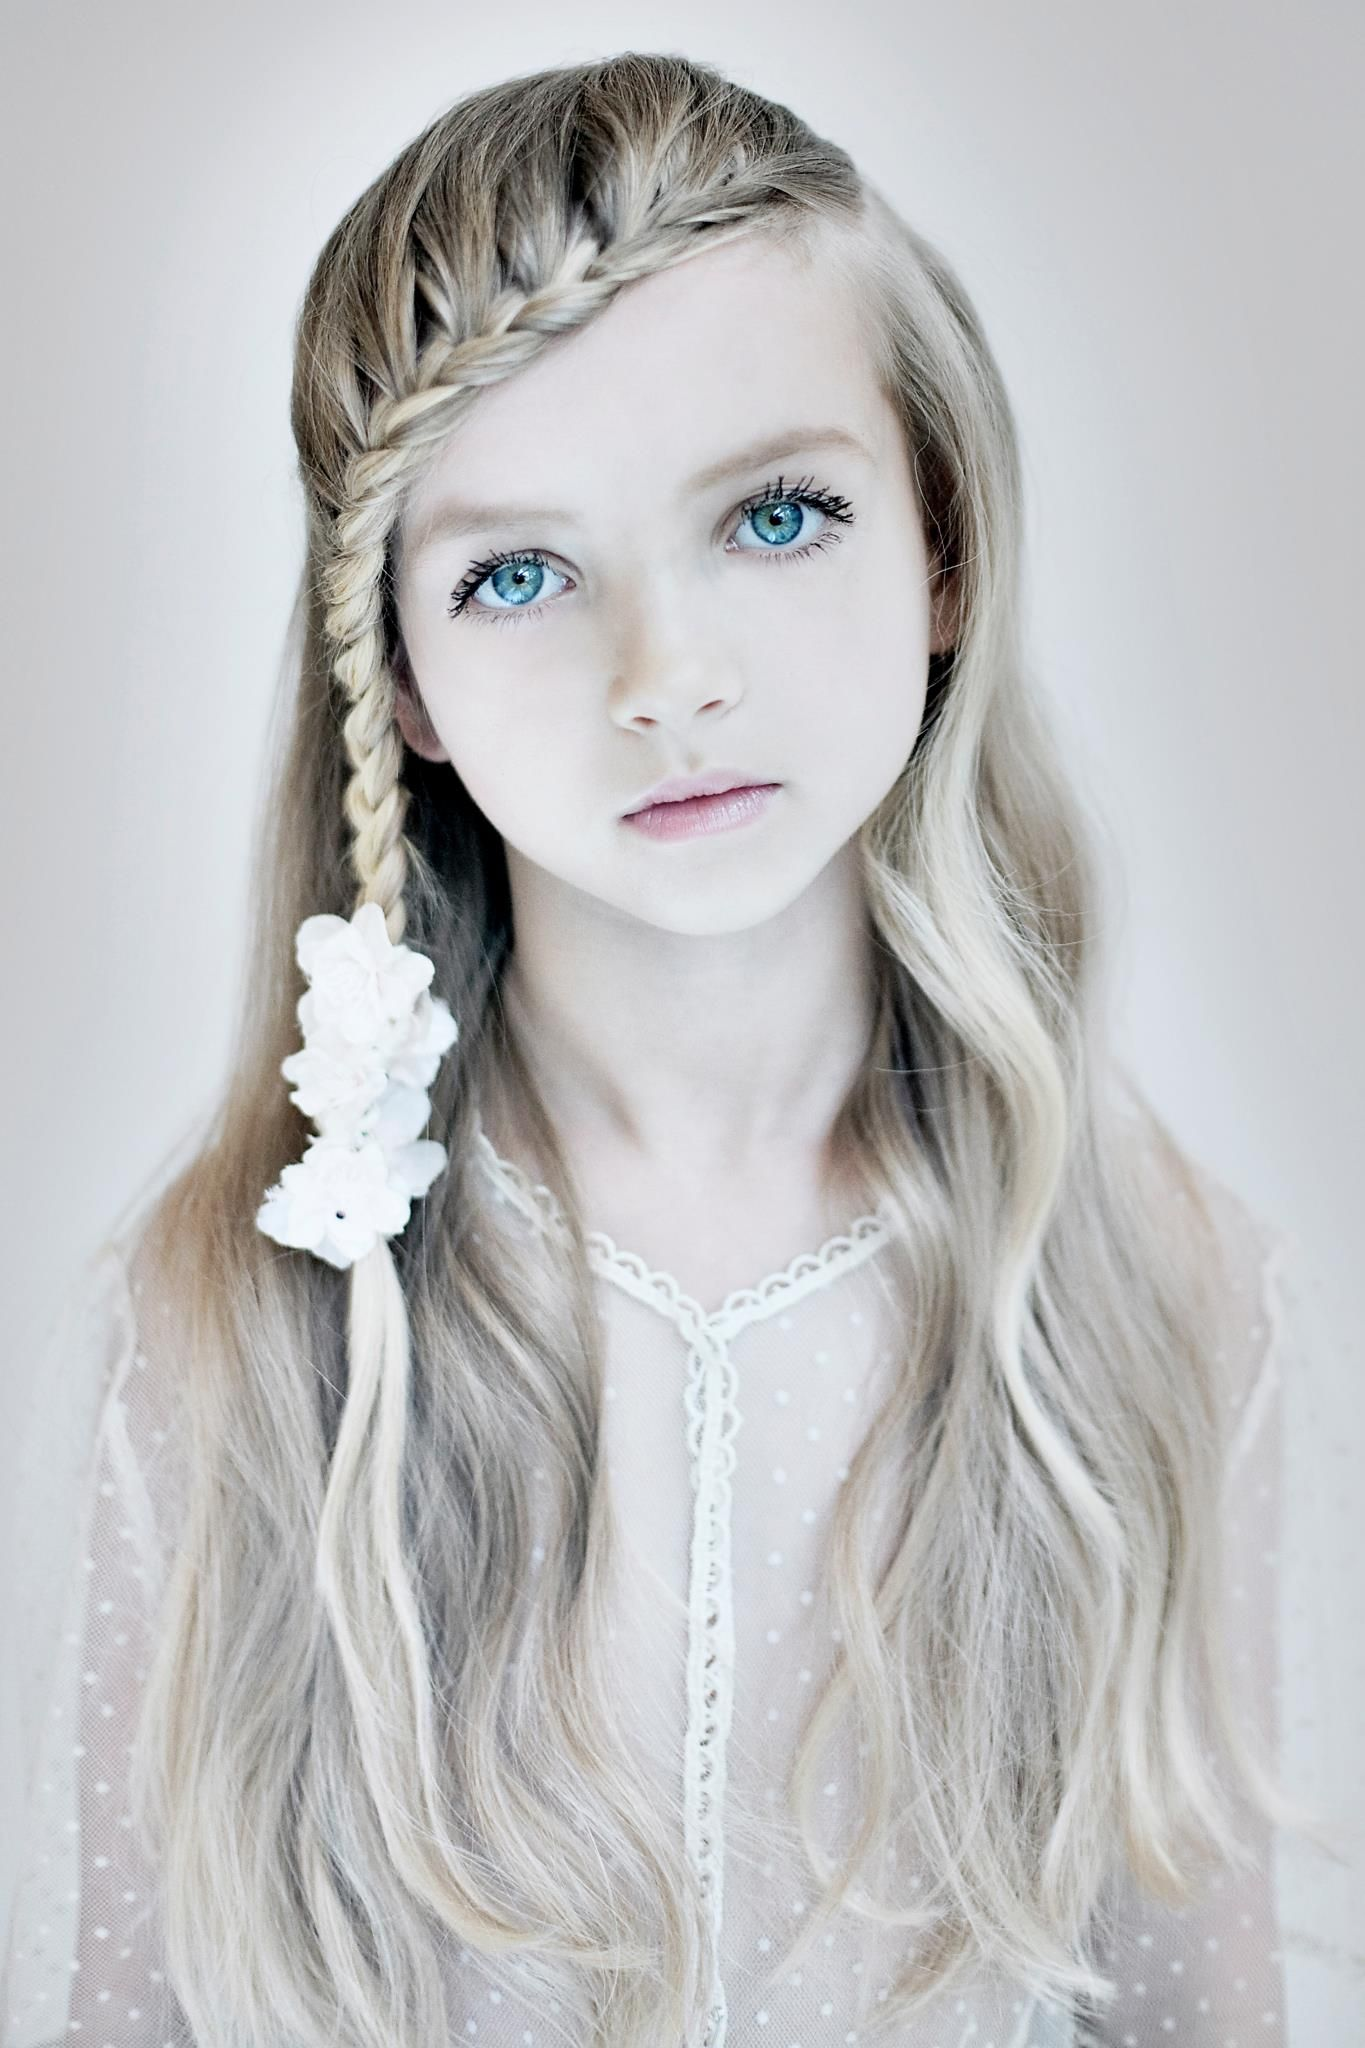 So cute! Photography by Tanneke Peetoom. | Hair and makeup trends ...